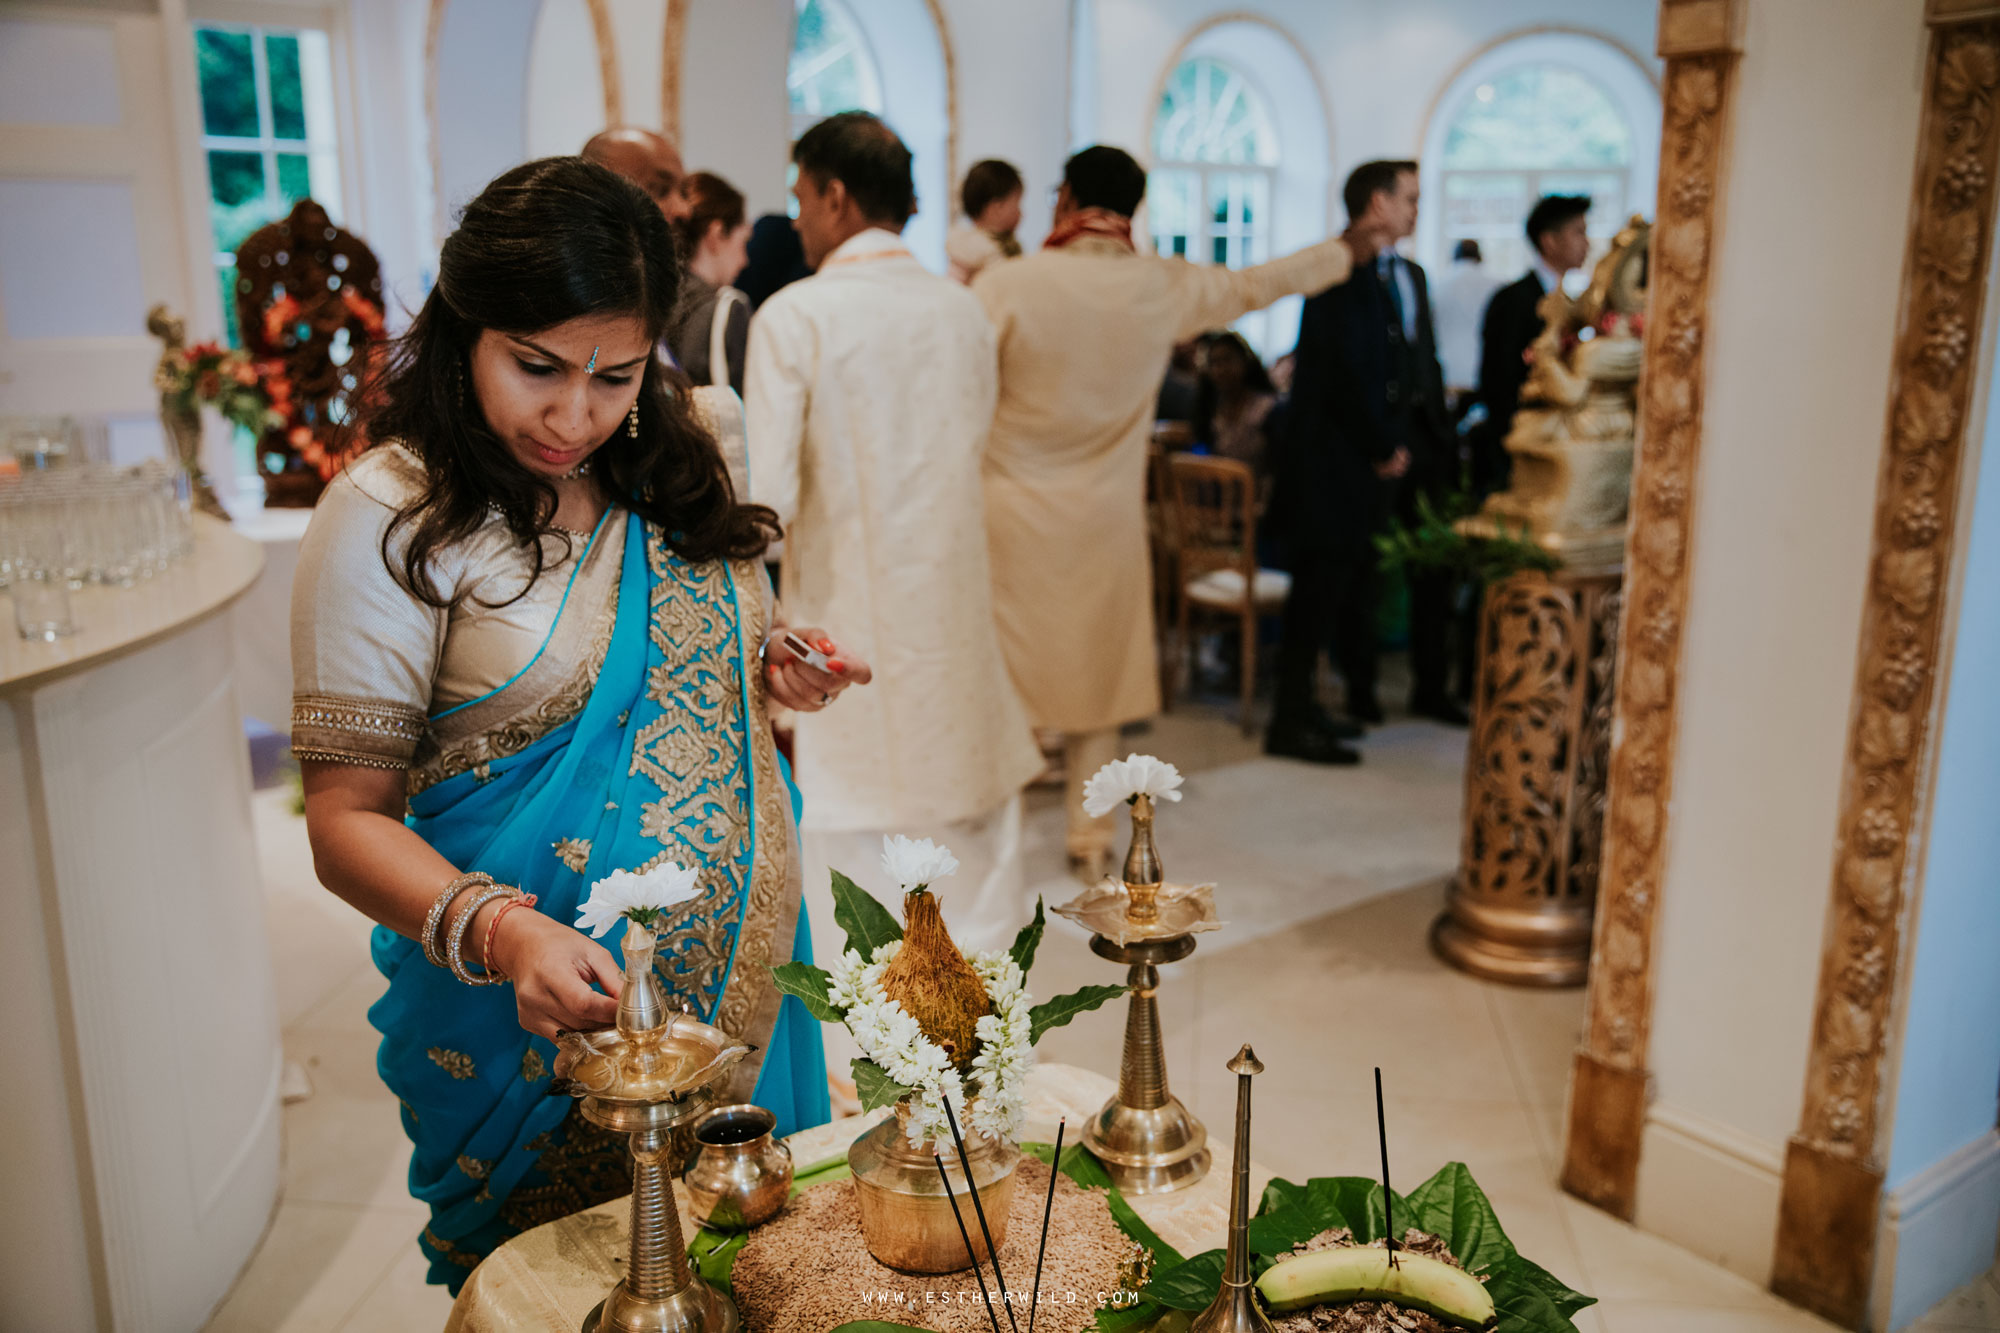 Northbrook_Park_Farnham_Surrey_London_Wedding_Hindu_Fusion_Esther_Wild_Photographer_IMG_3220.jpg